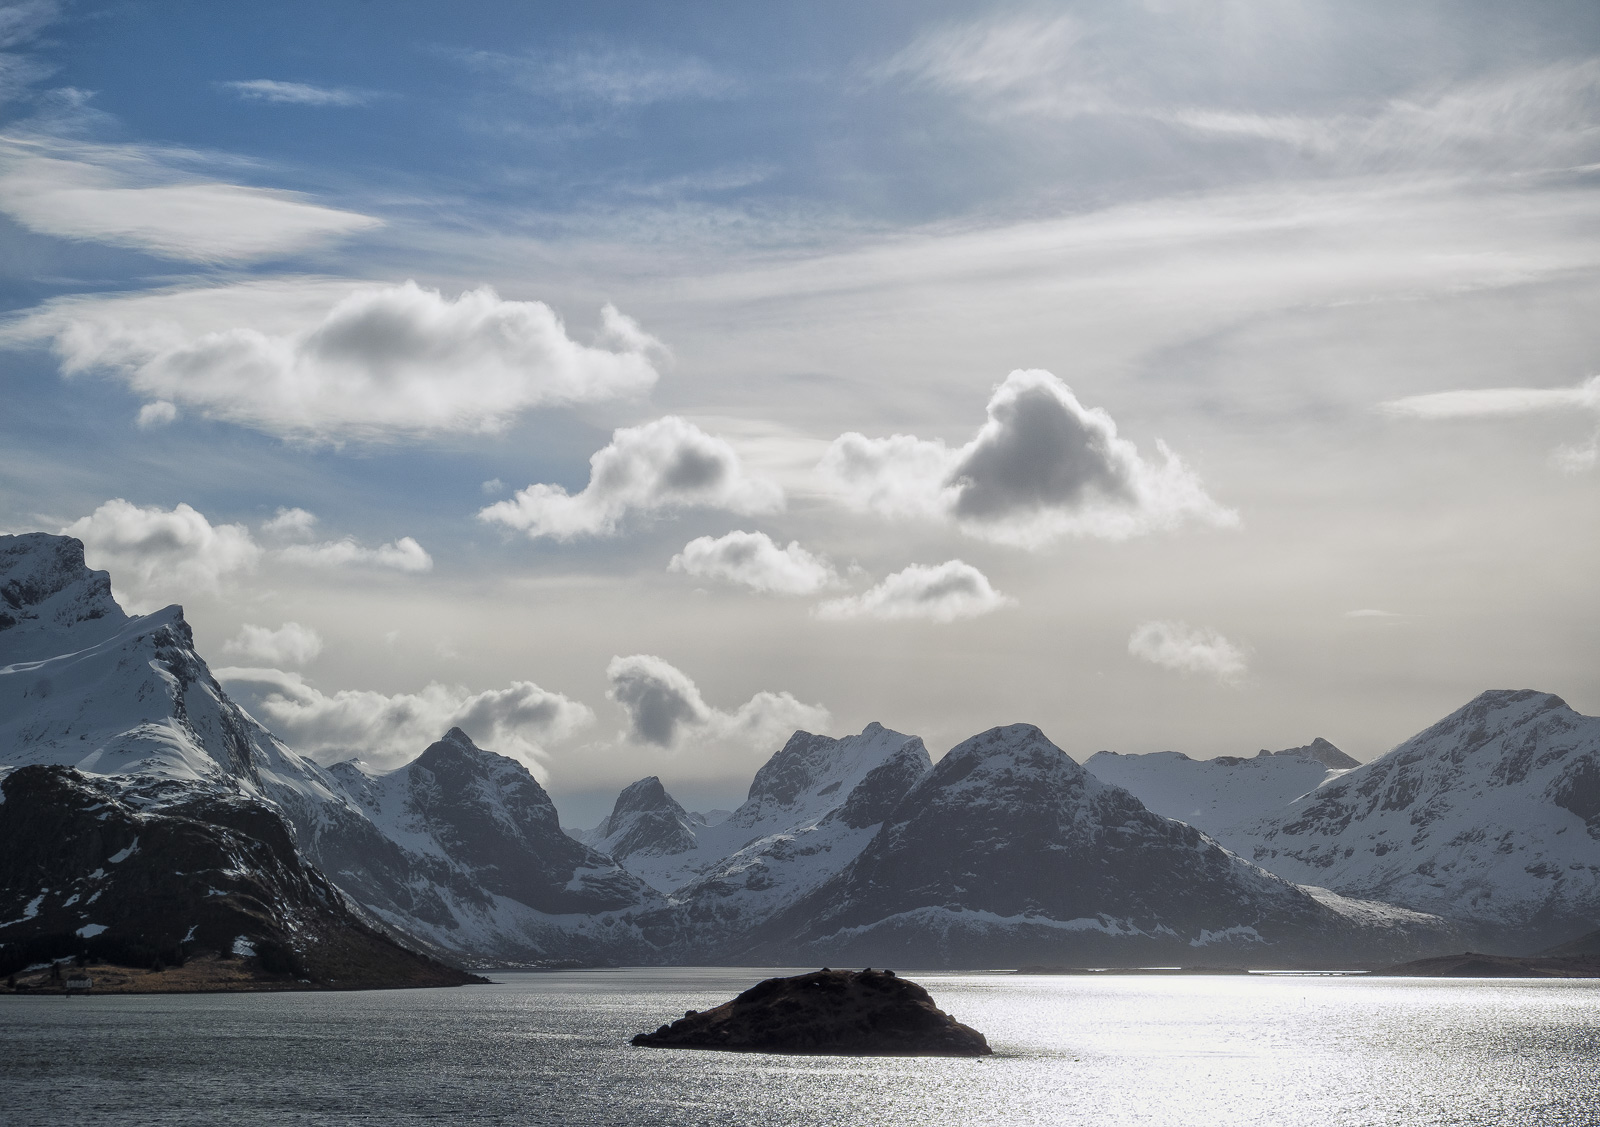 One of my favourite mountain views on the island of Lofoten are these majestic and craggy peaks on the approach to Reine behind...